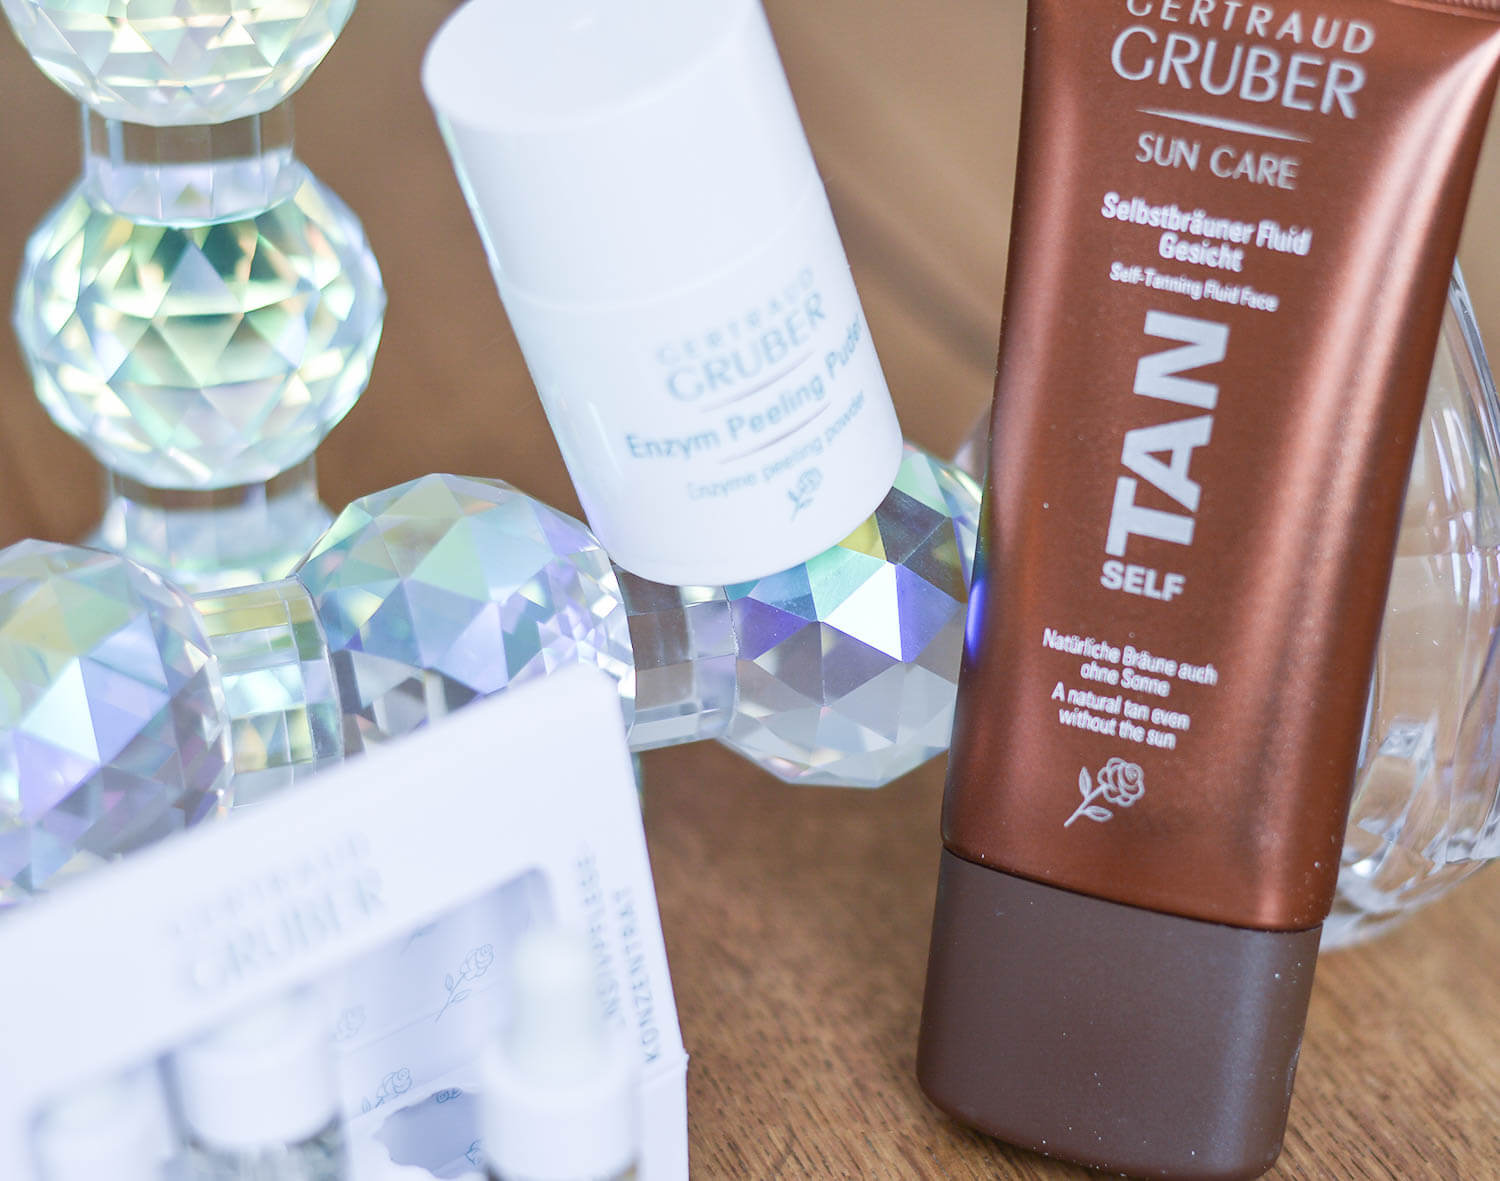 Beauty-Cosmetic-Faves-from-CND-Gertraud-Gruber-and-Deynique-beautyblogger-kationette-lifestyle